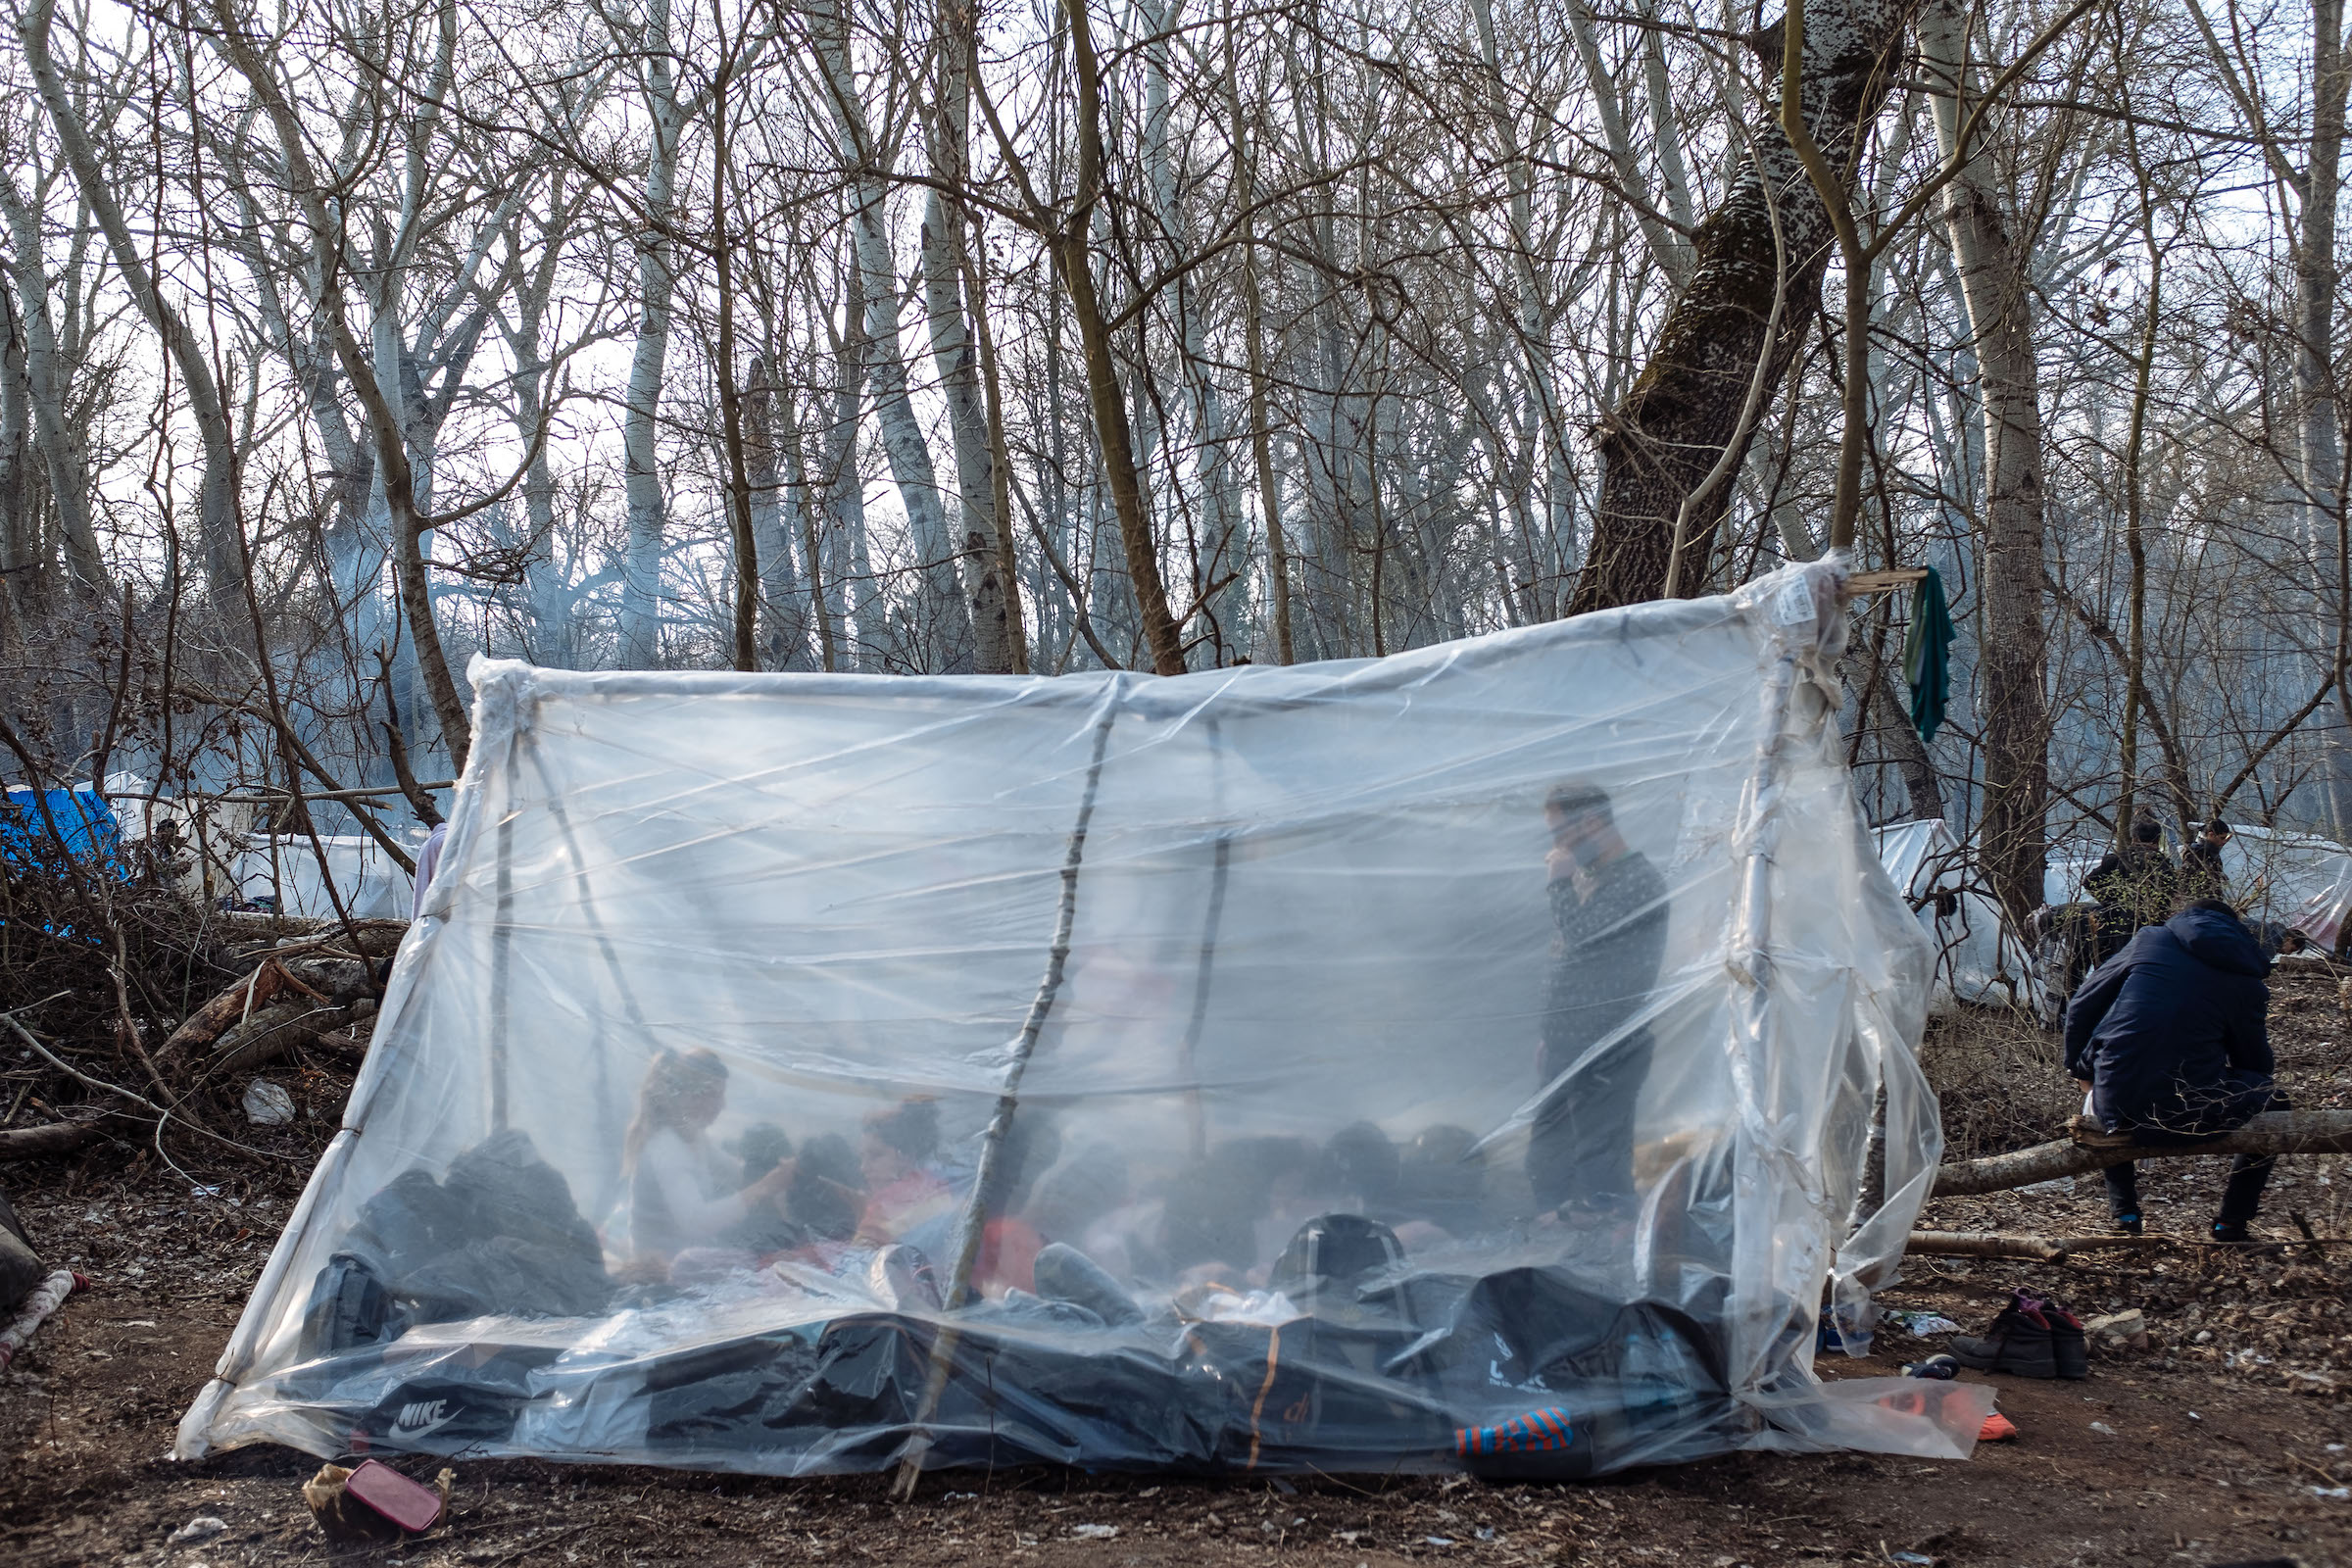 A tent made of propped-up branches, wrapped in plastic. Many migrants slept in the area for days, waiting for a chance to cross the border.